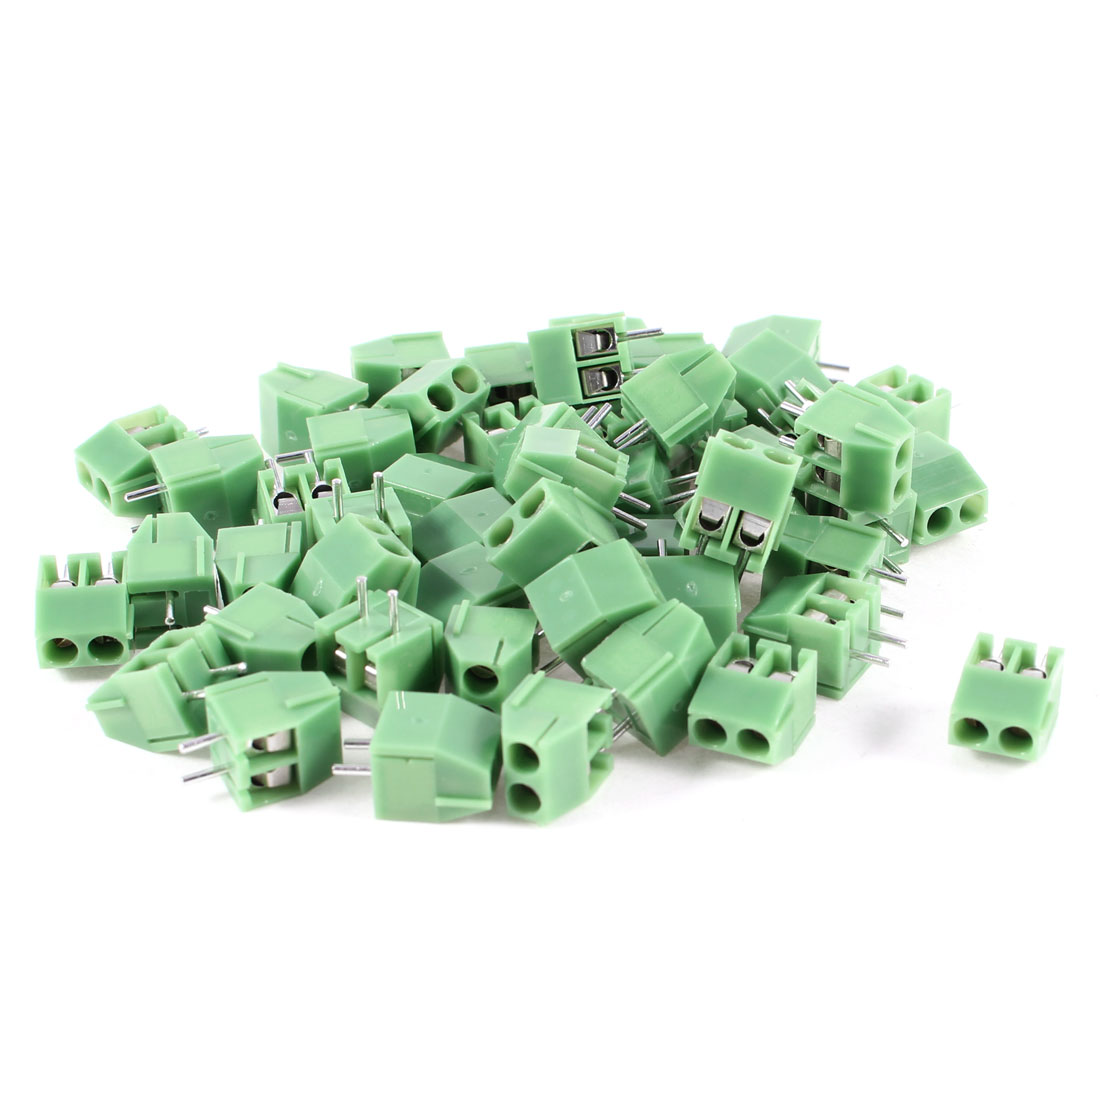 50 Pcs 300V 10A 2 Positions 5mm Pitch Pluggable Terminal Block Green